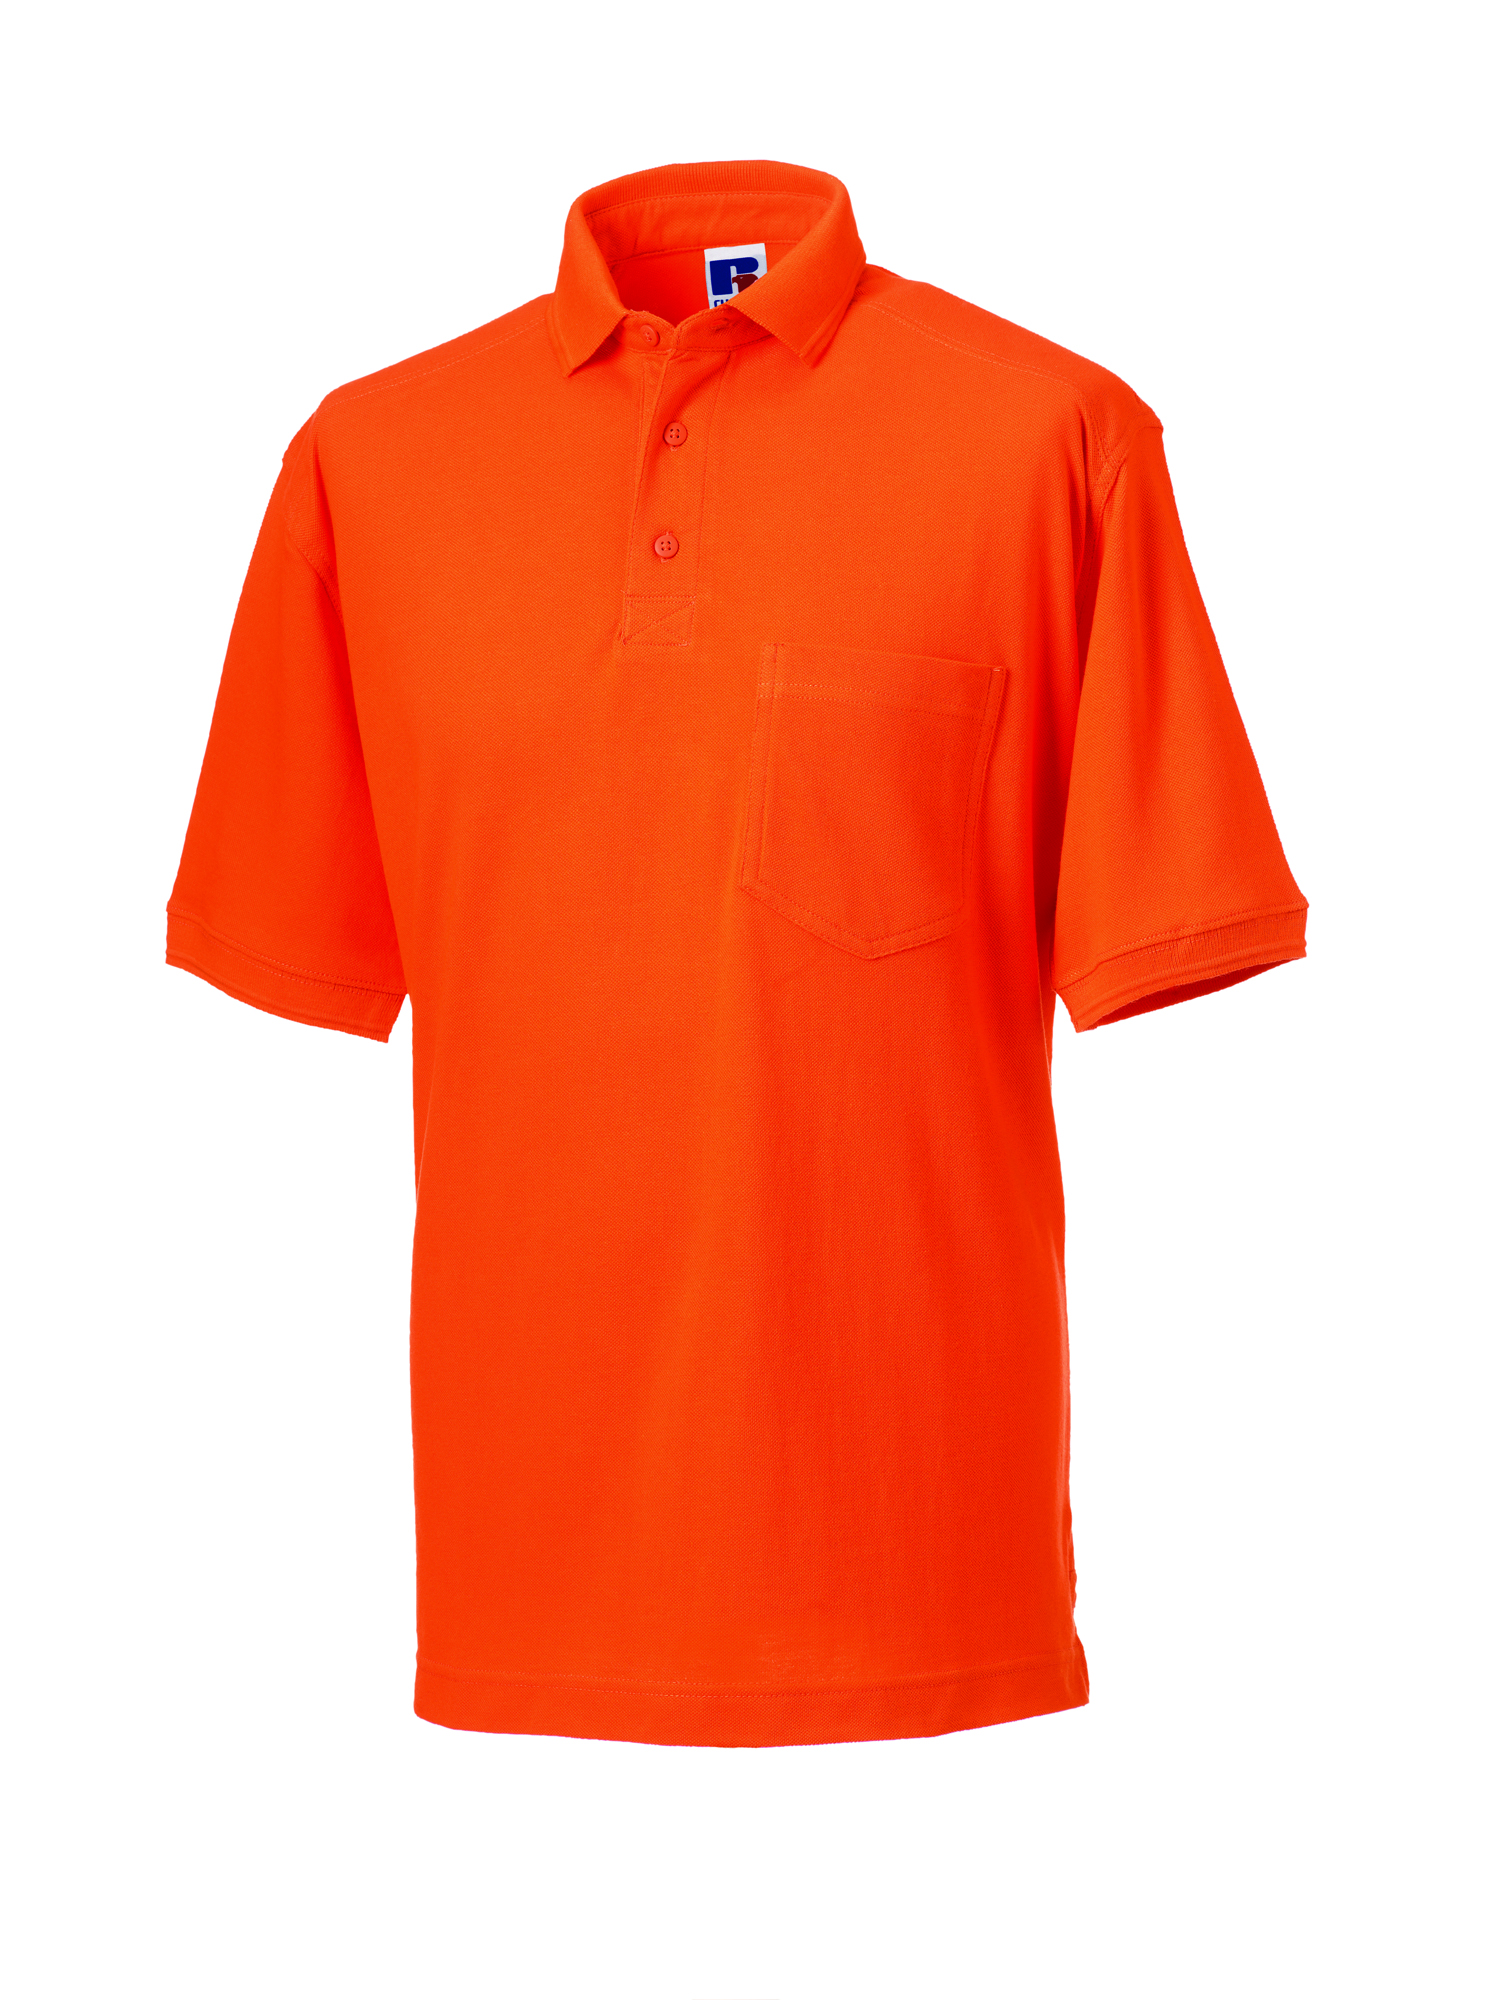 Heavy Duty Cotton Polo - Orange - S